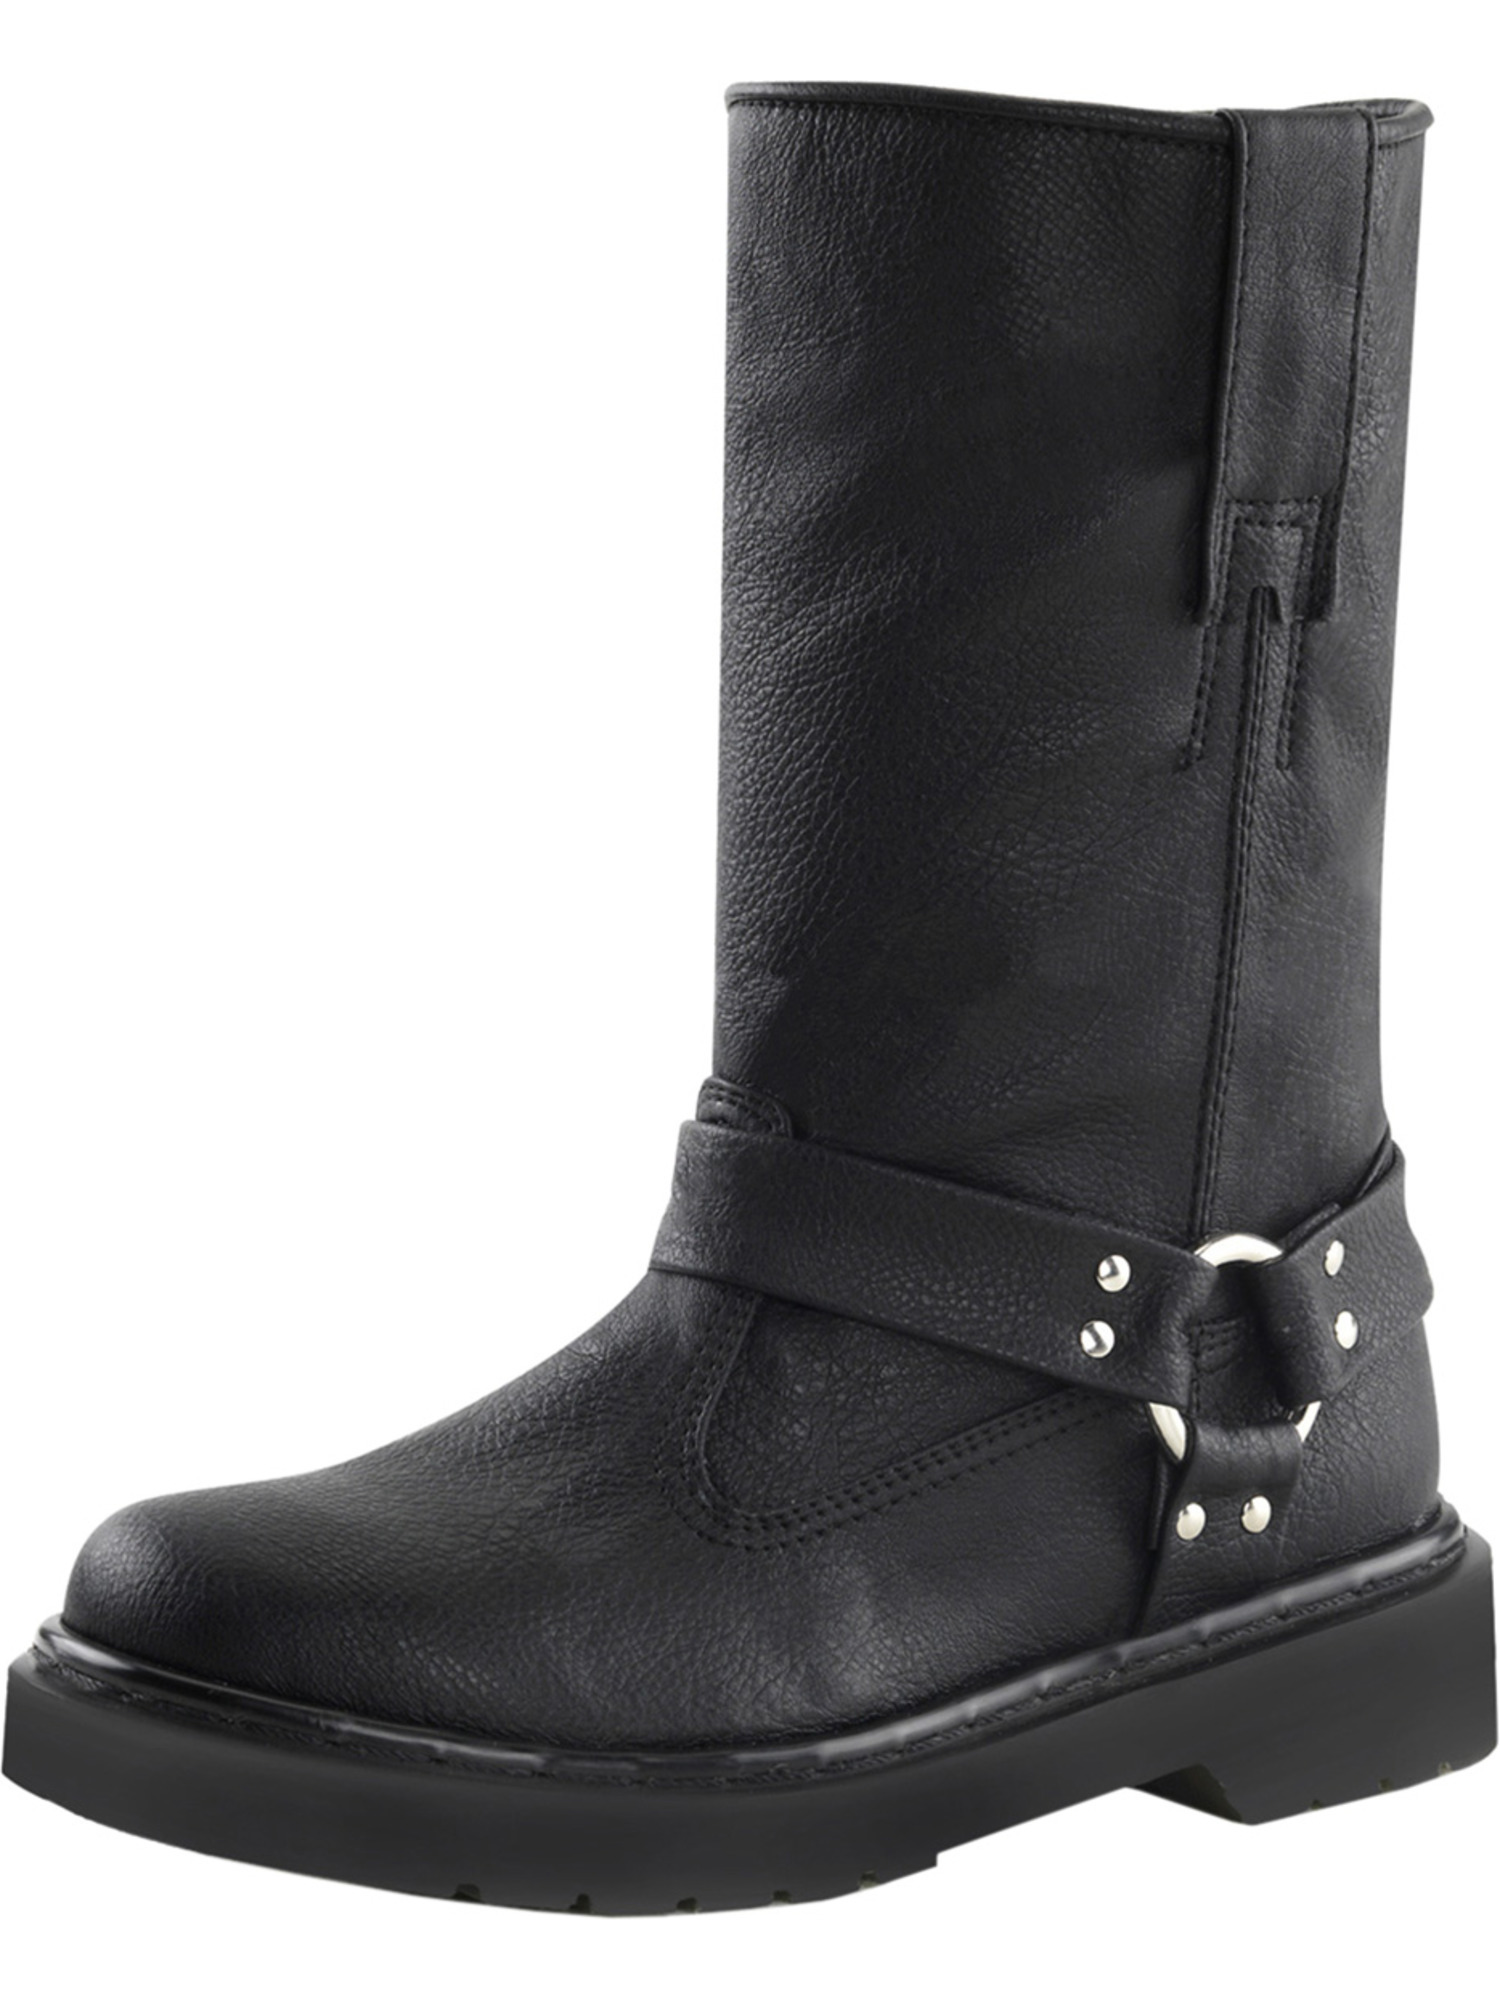 Womens Black Motorcycle Boots Vegan Leather Calf Boots Studs 1 1/4 Inch Heel